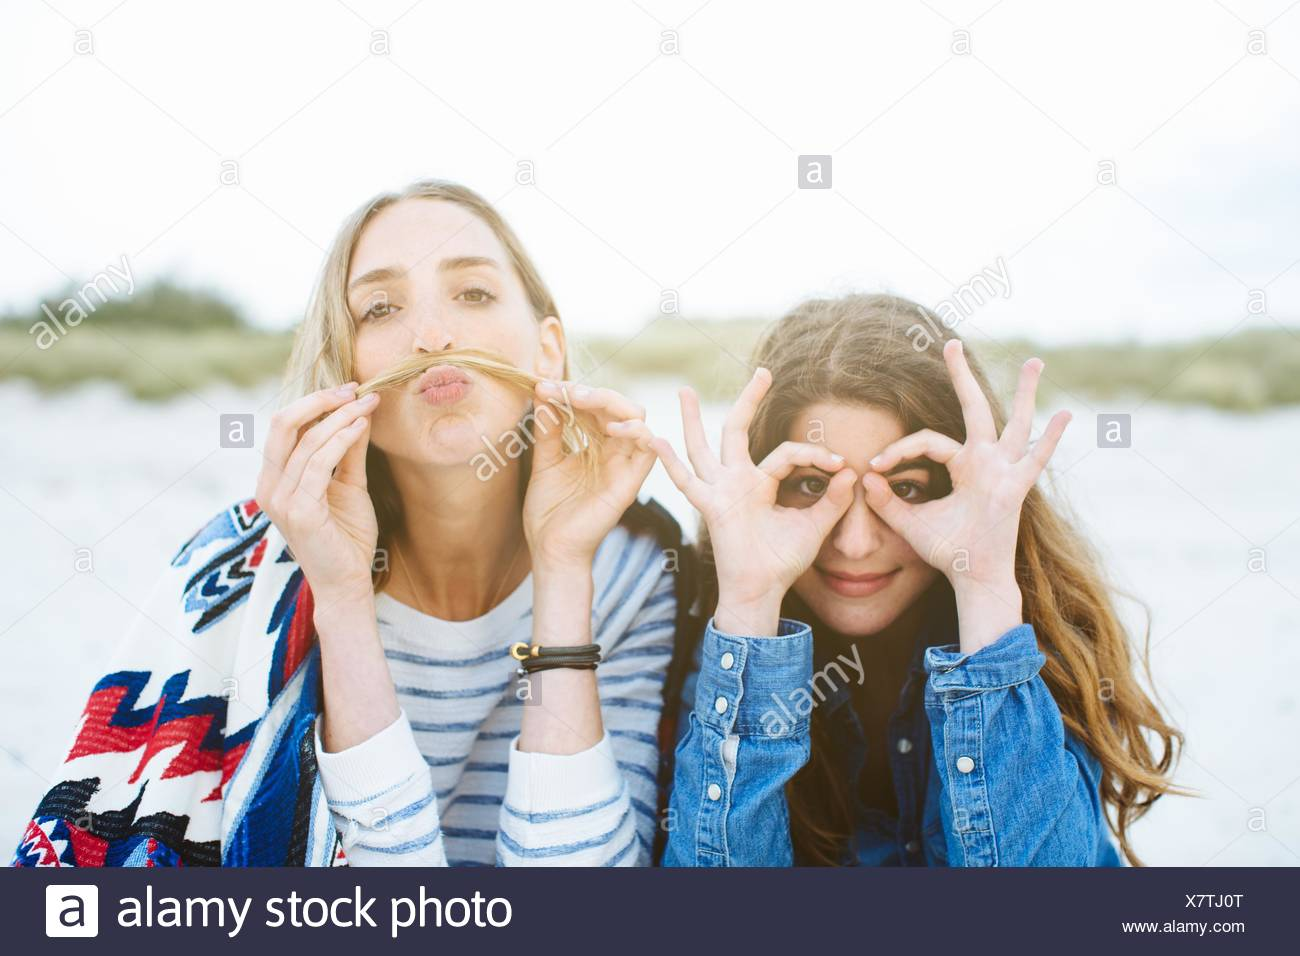 Portrait of two young female friends making moustache and spectacled faces on beach Stock Photo